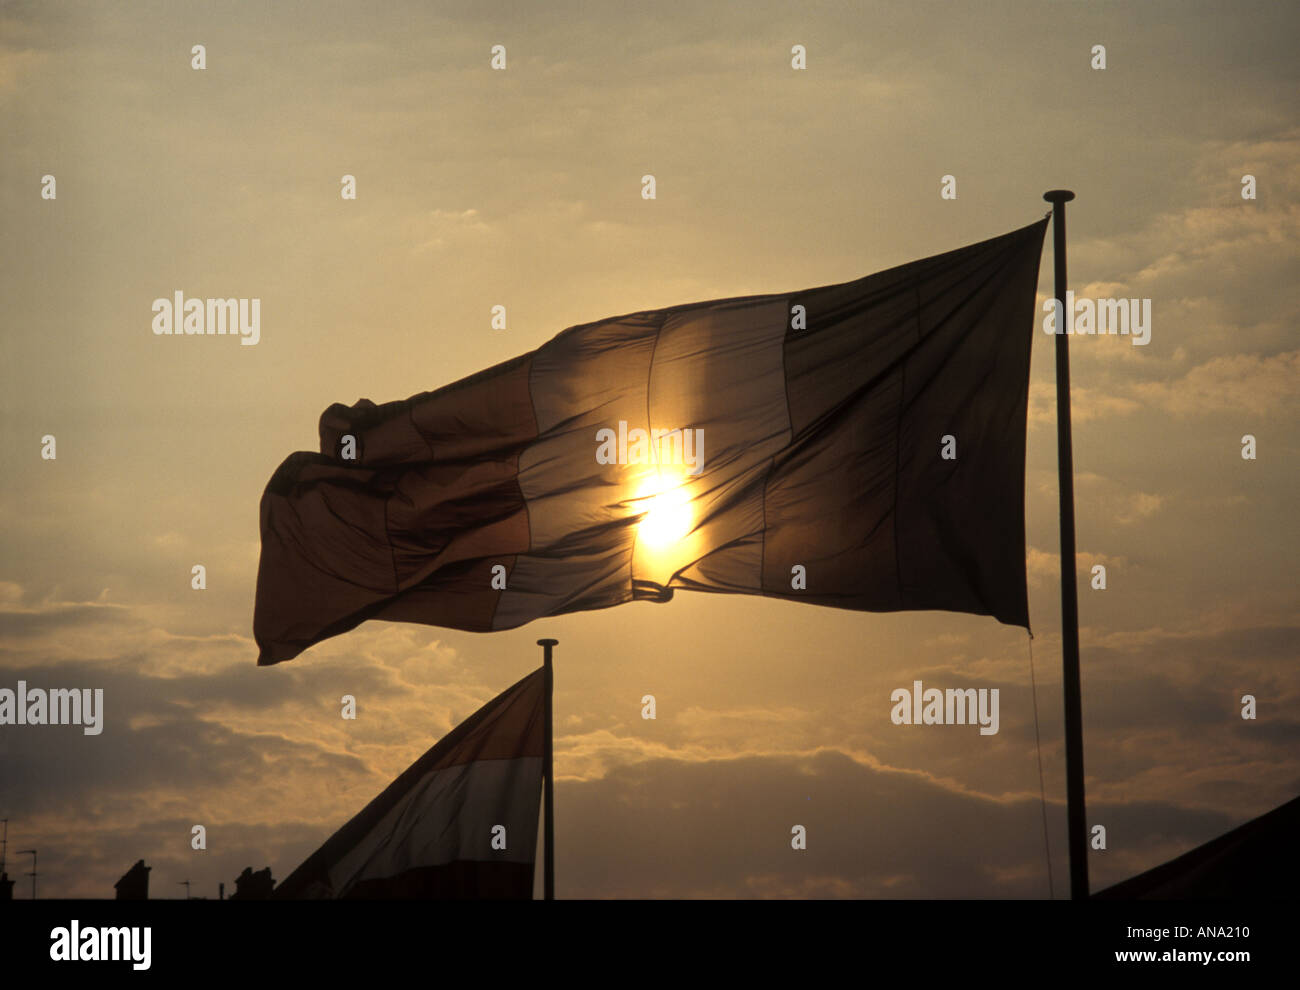 flag with sun behind it - Stock Image